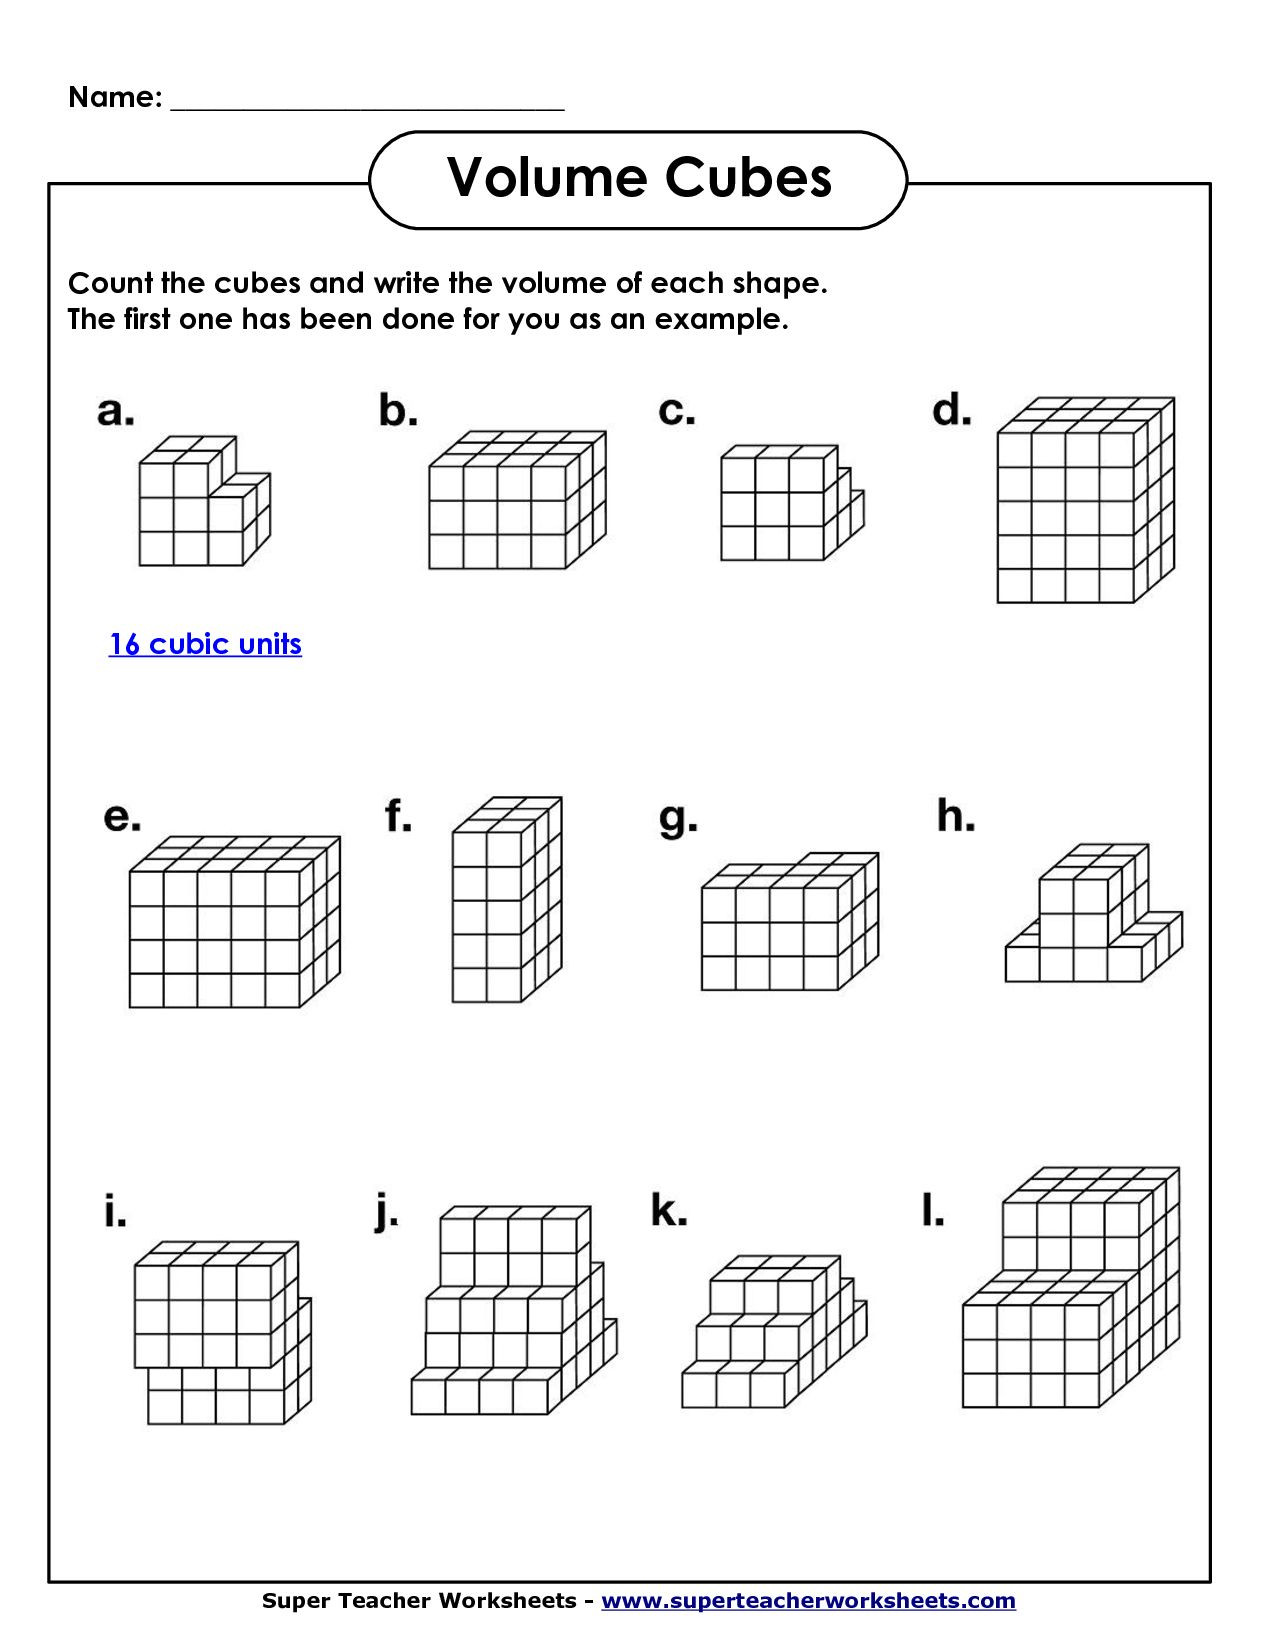 Volume Worksheets 3rd Grade Image From Http Stoccdn Thumb orig Math Worksheets for Kids